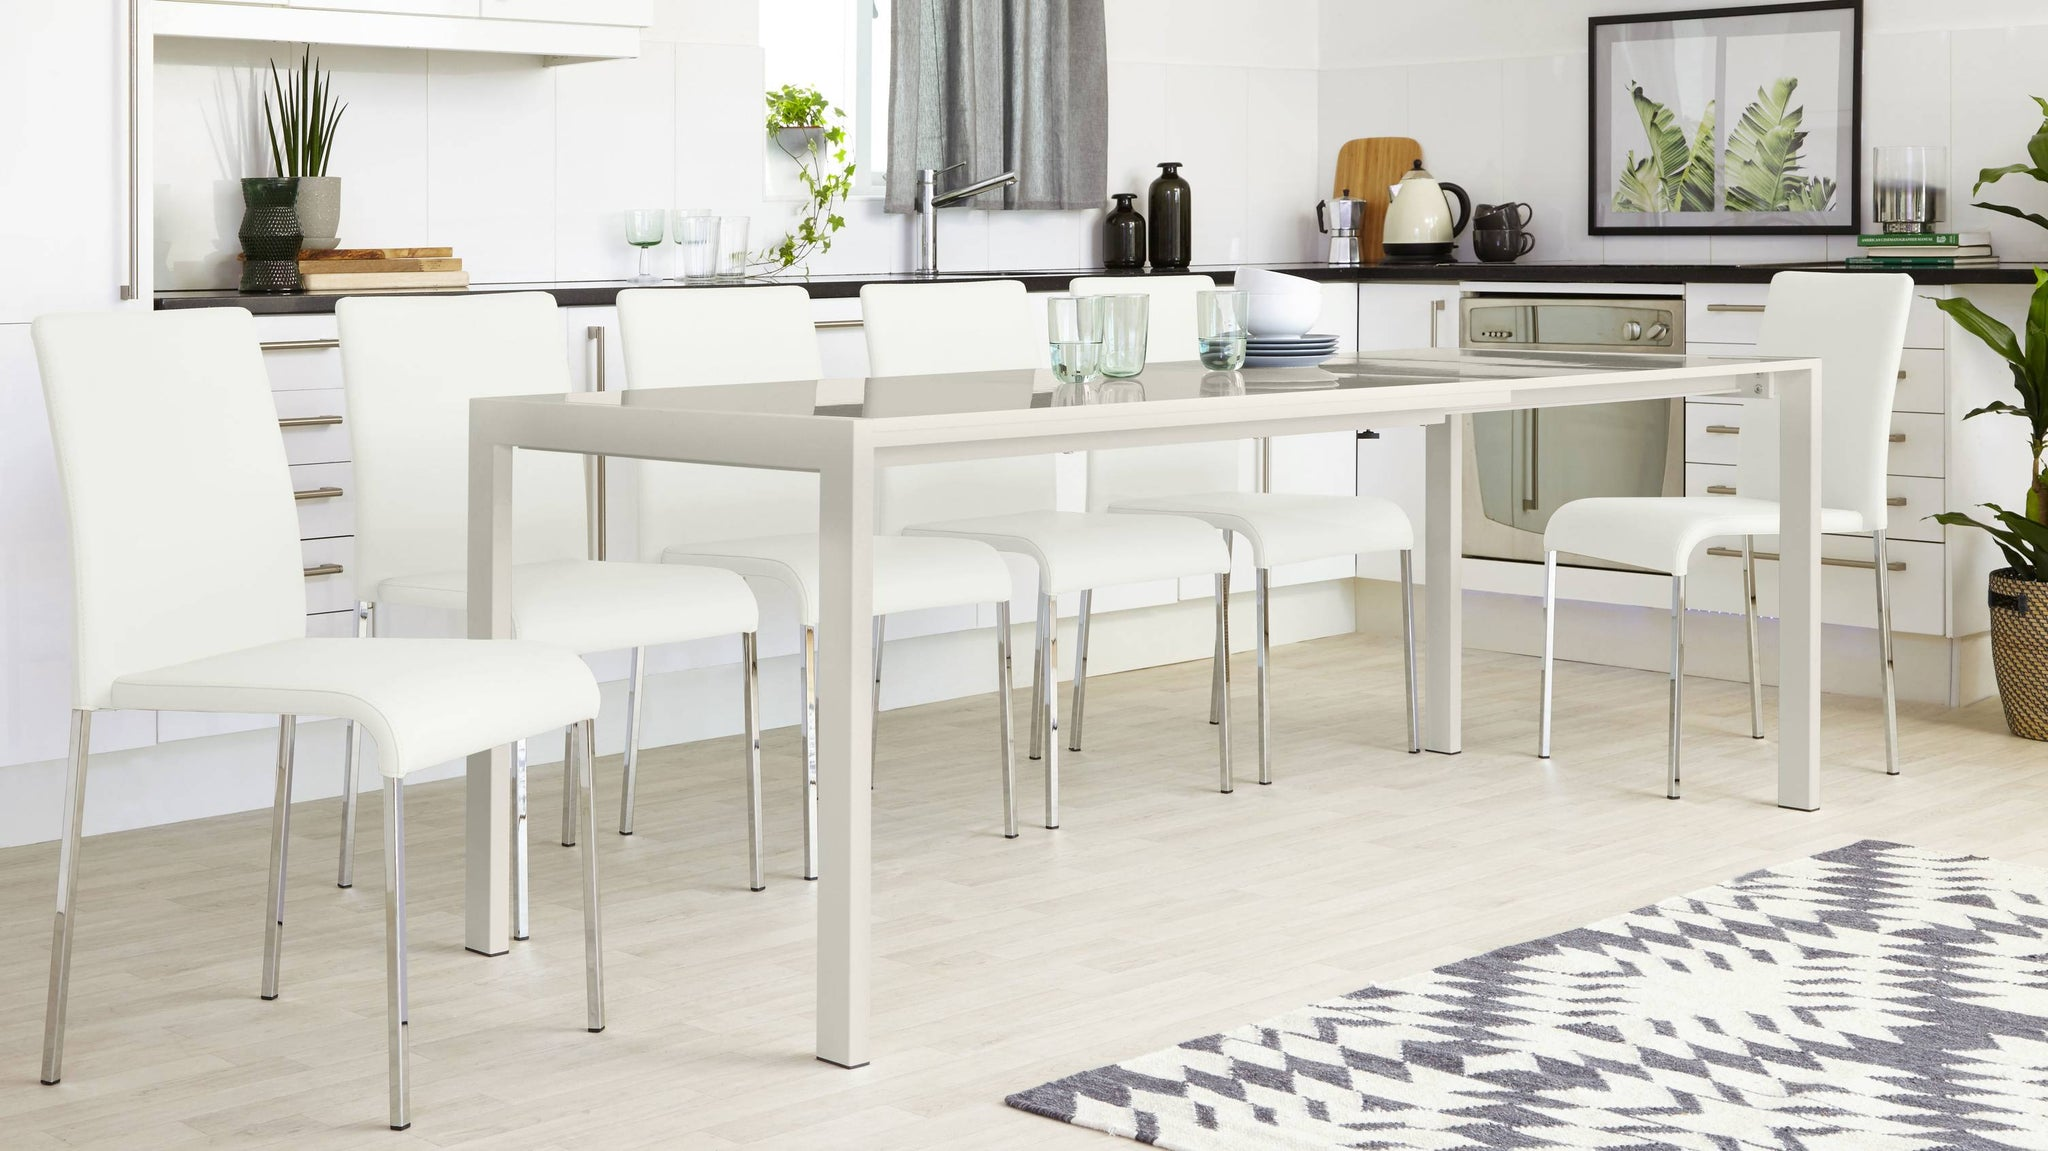 8 Seater Extending Dining Table